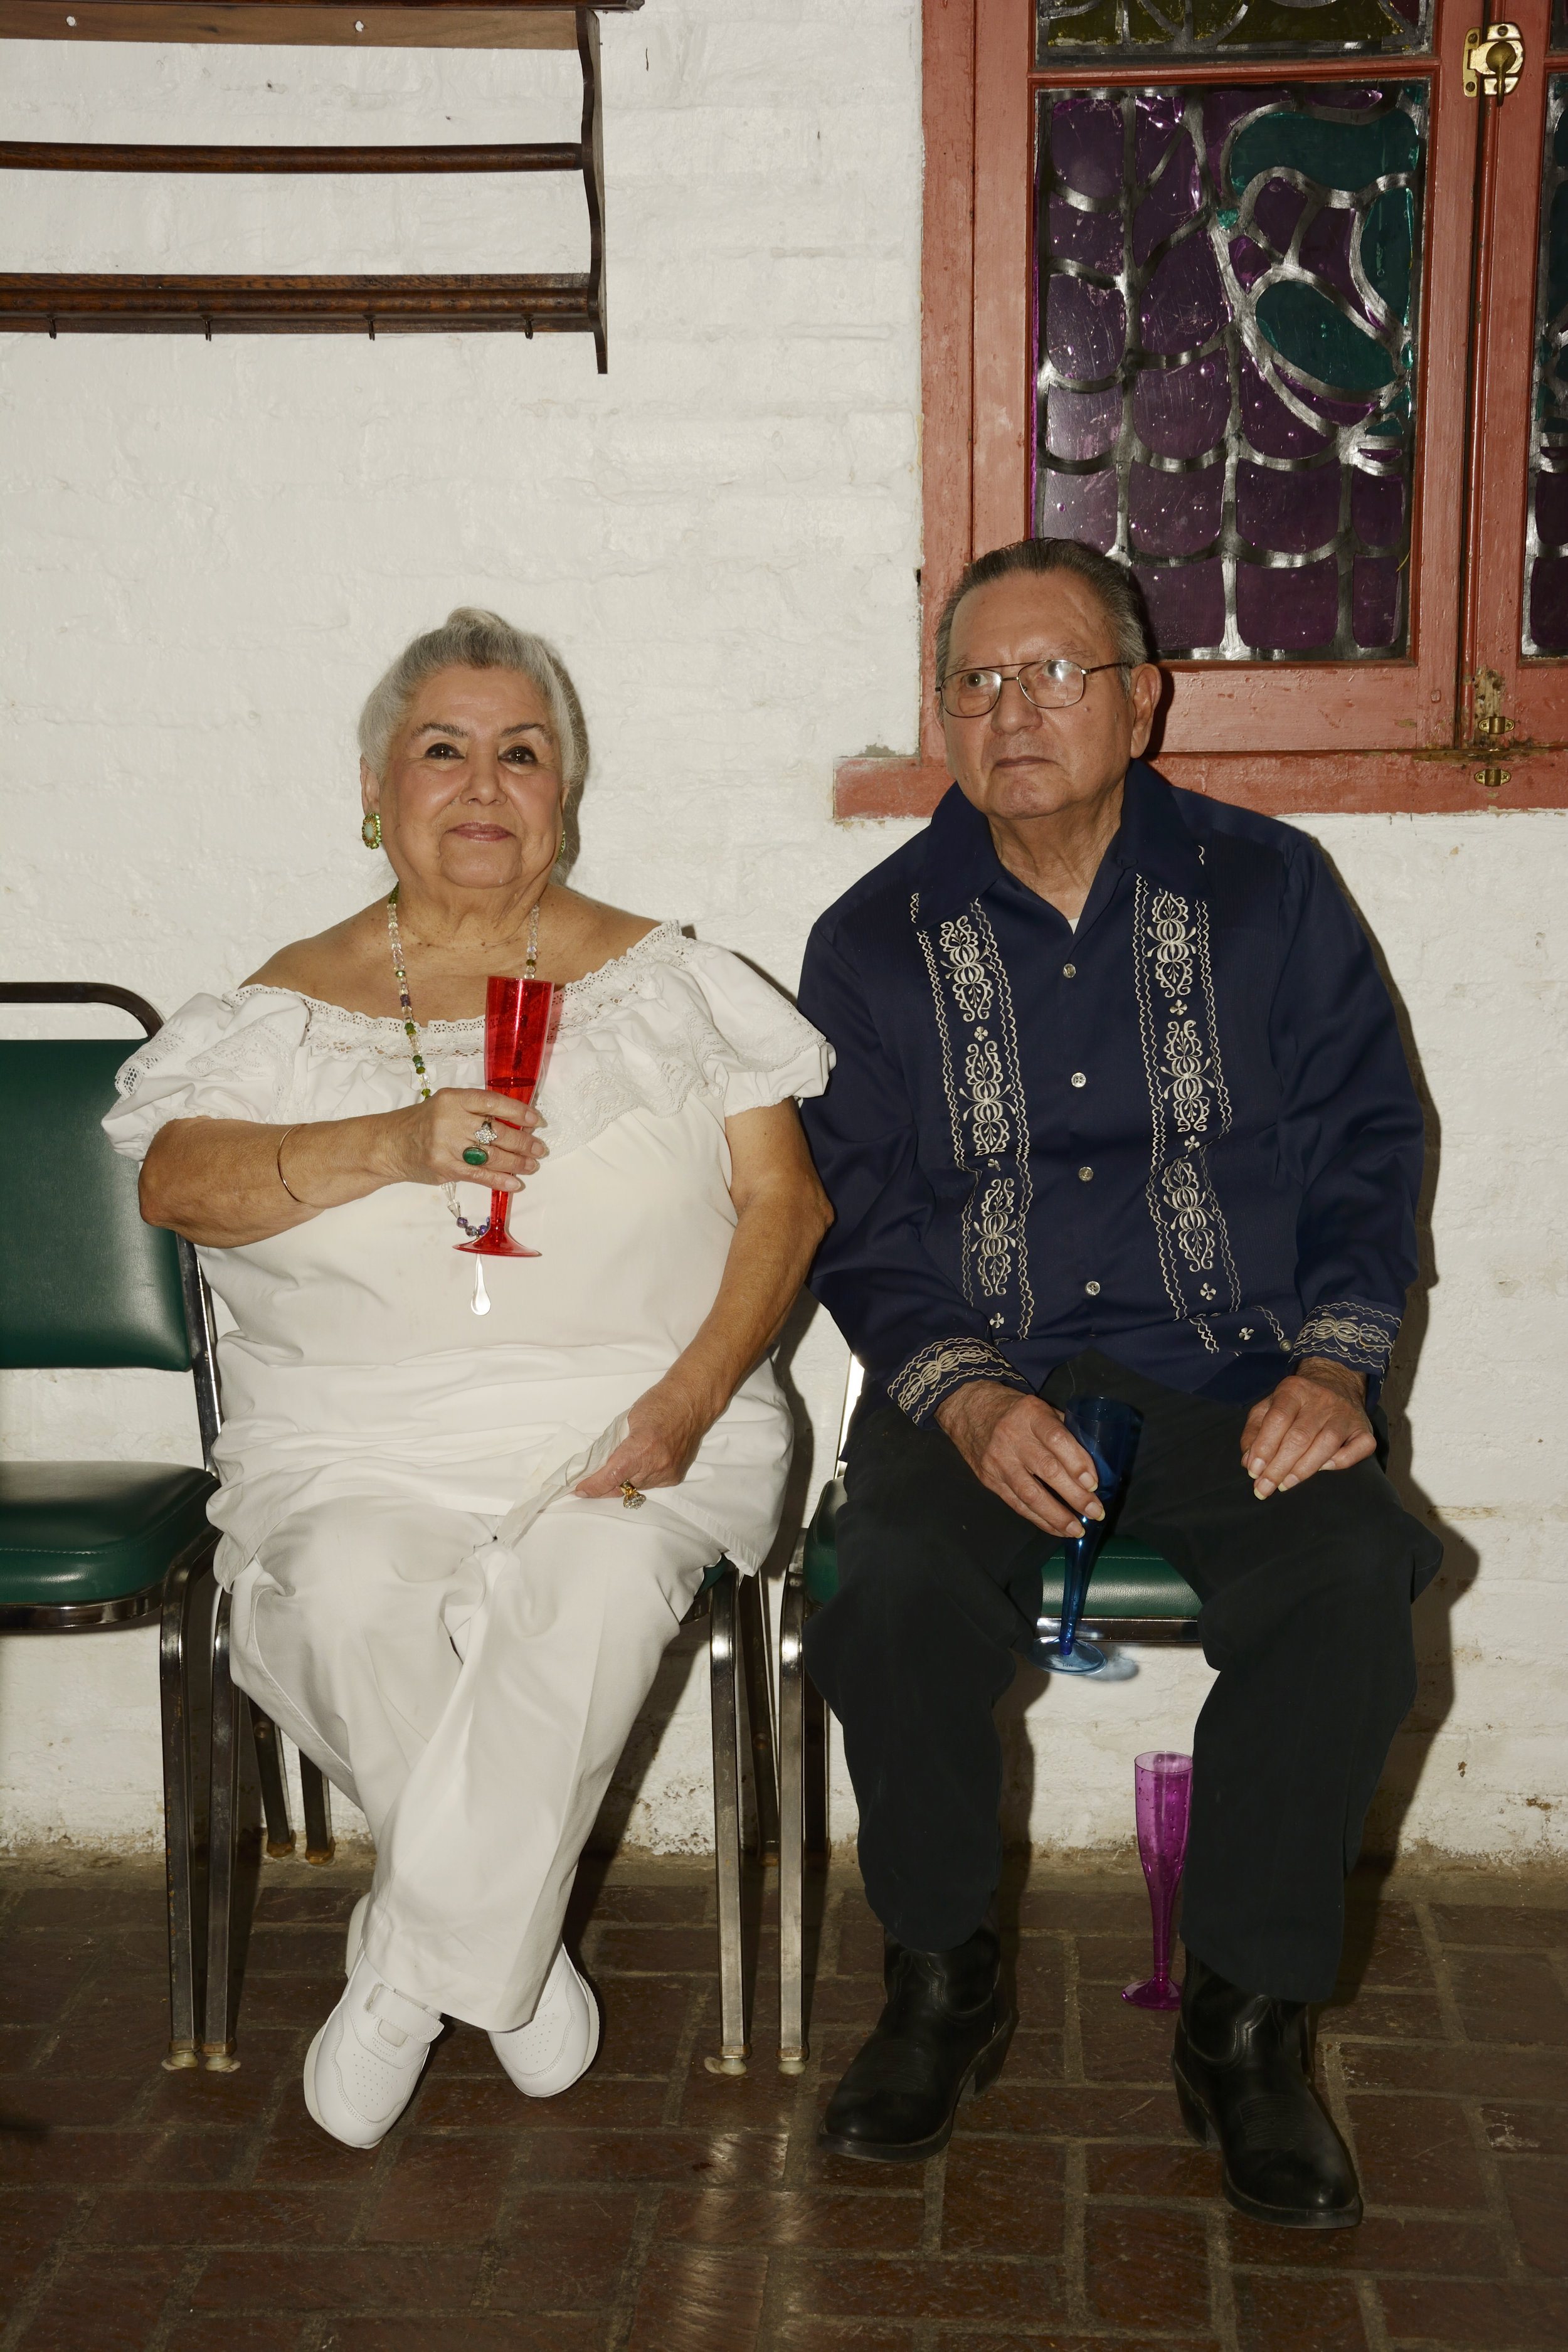 Angelique's grandparents Beatrice (l) and Guadalupe (r) celebrate at her wedding.  (Photo Courtesy: Angelique Sloan)